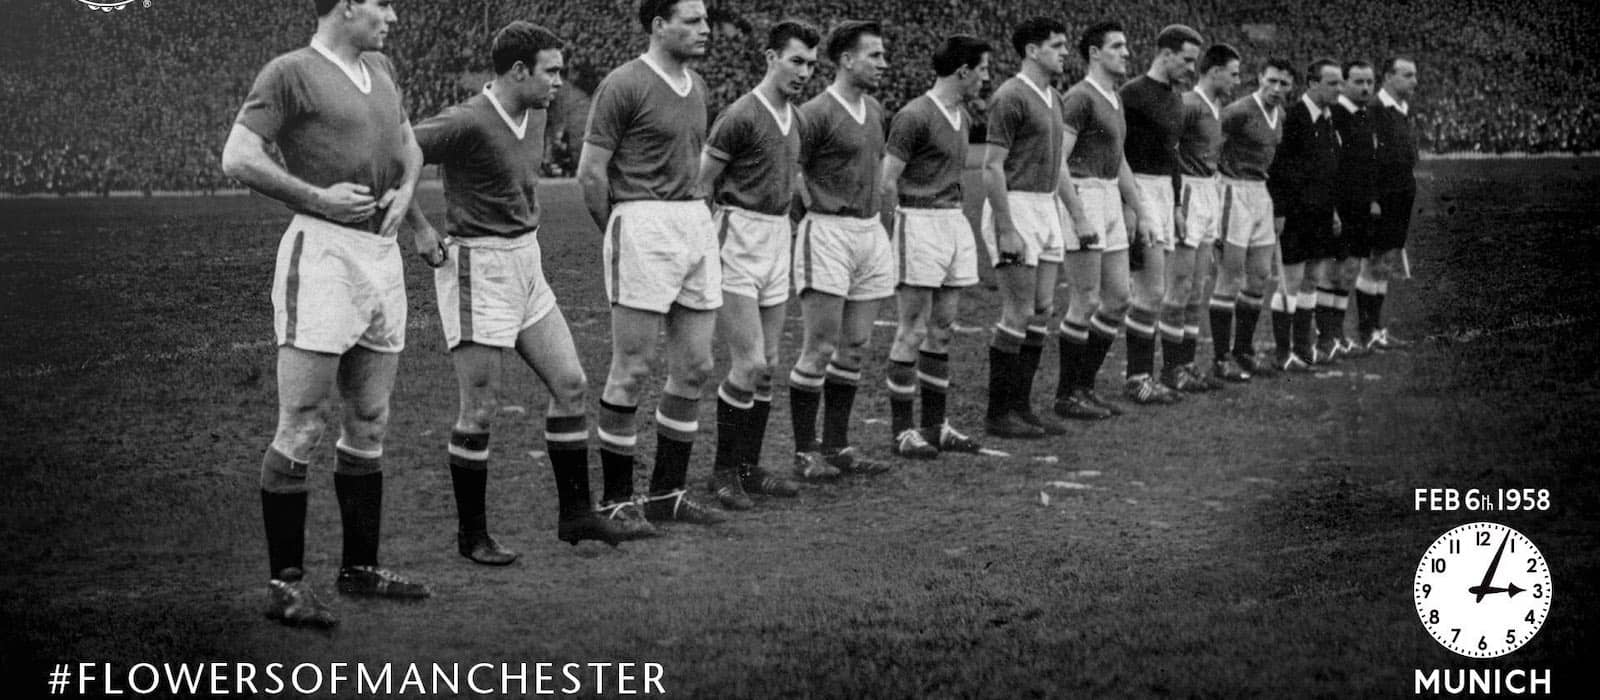 The Munich Air Disaster: Part I – Tragedy befalls Man United's Busby Babes